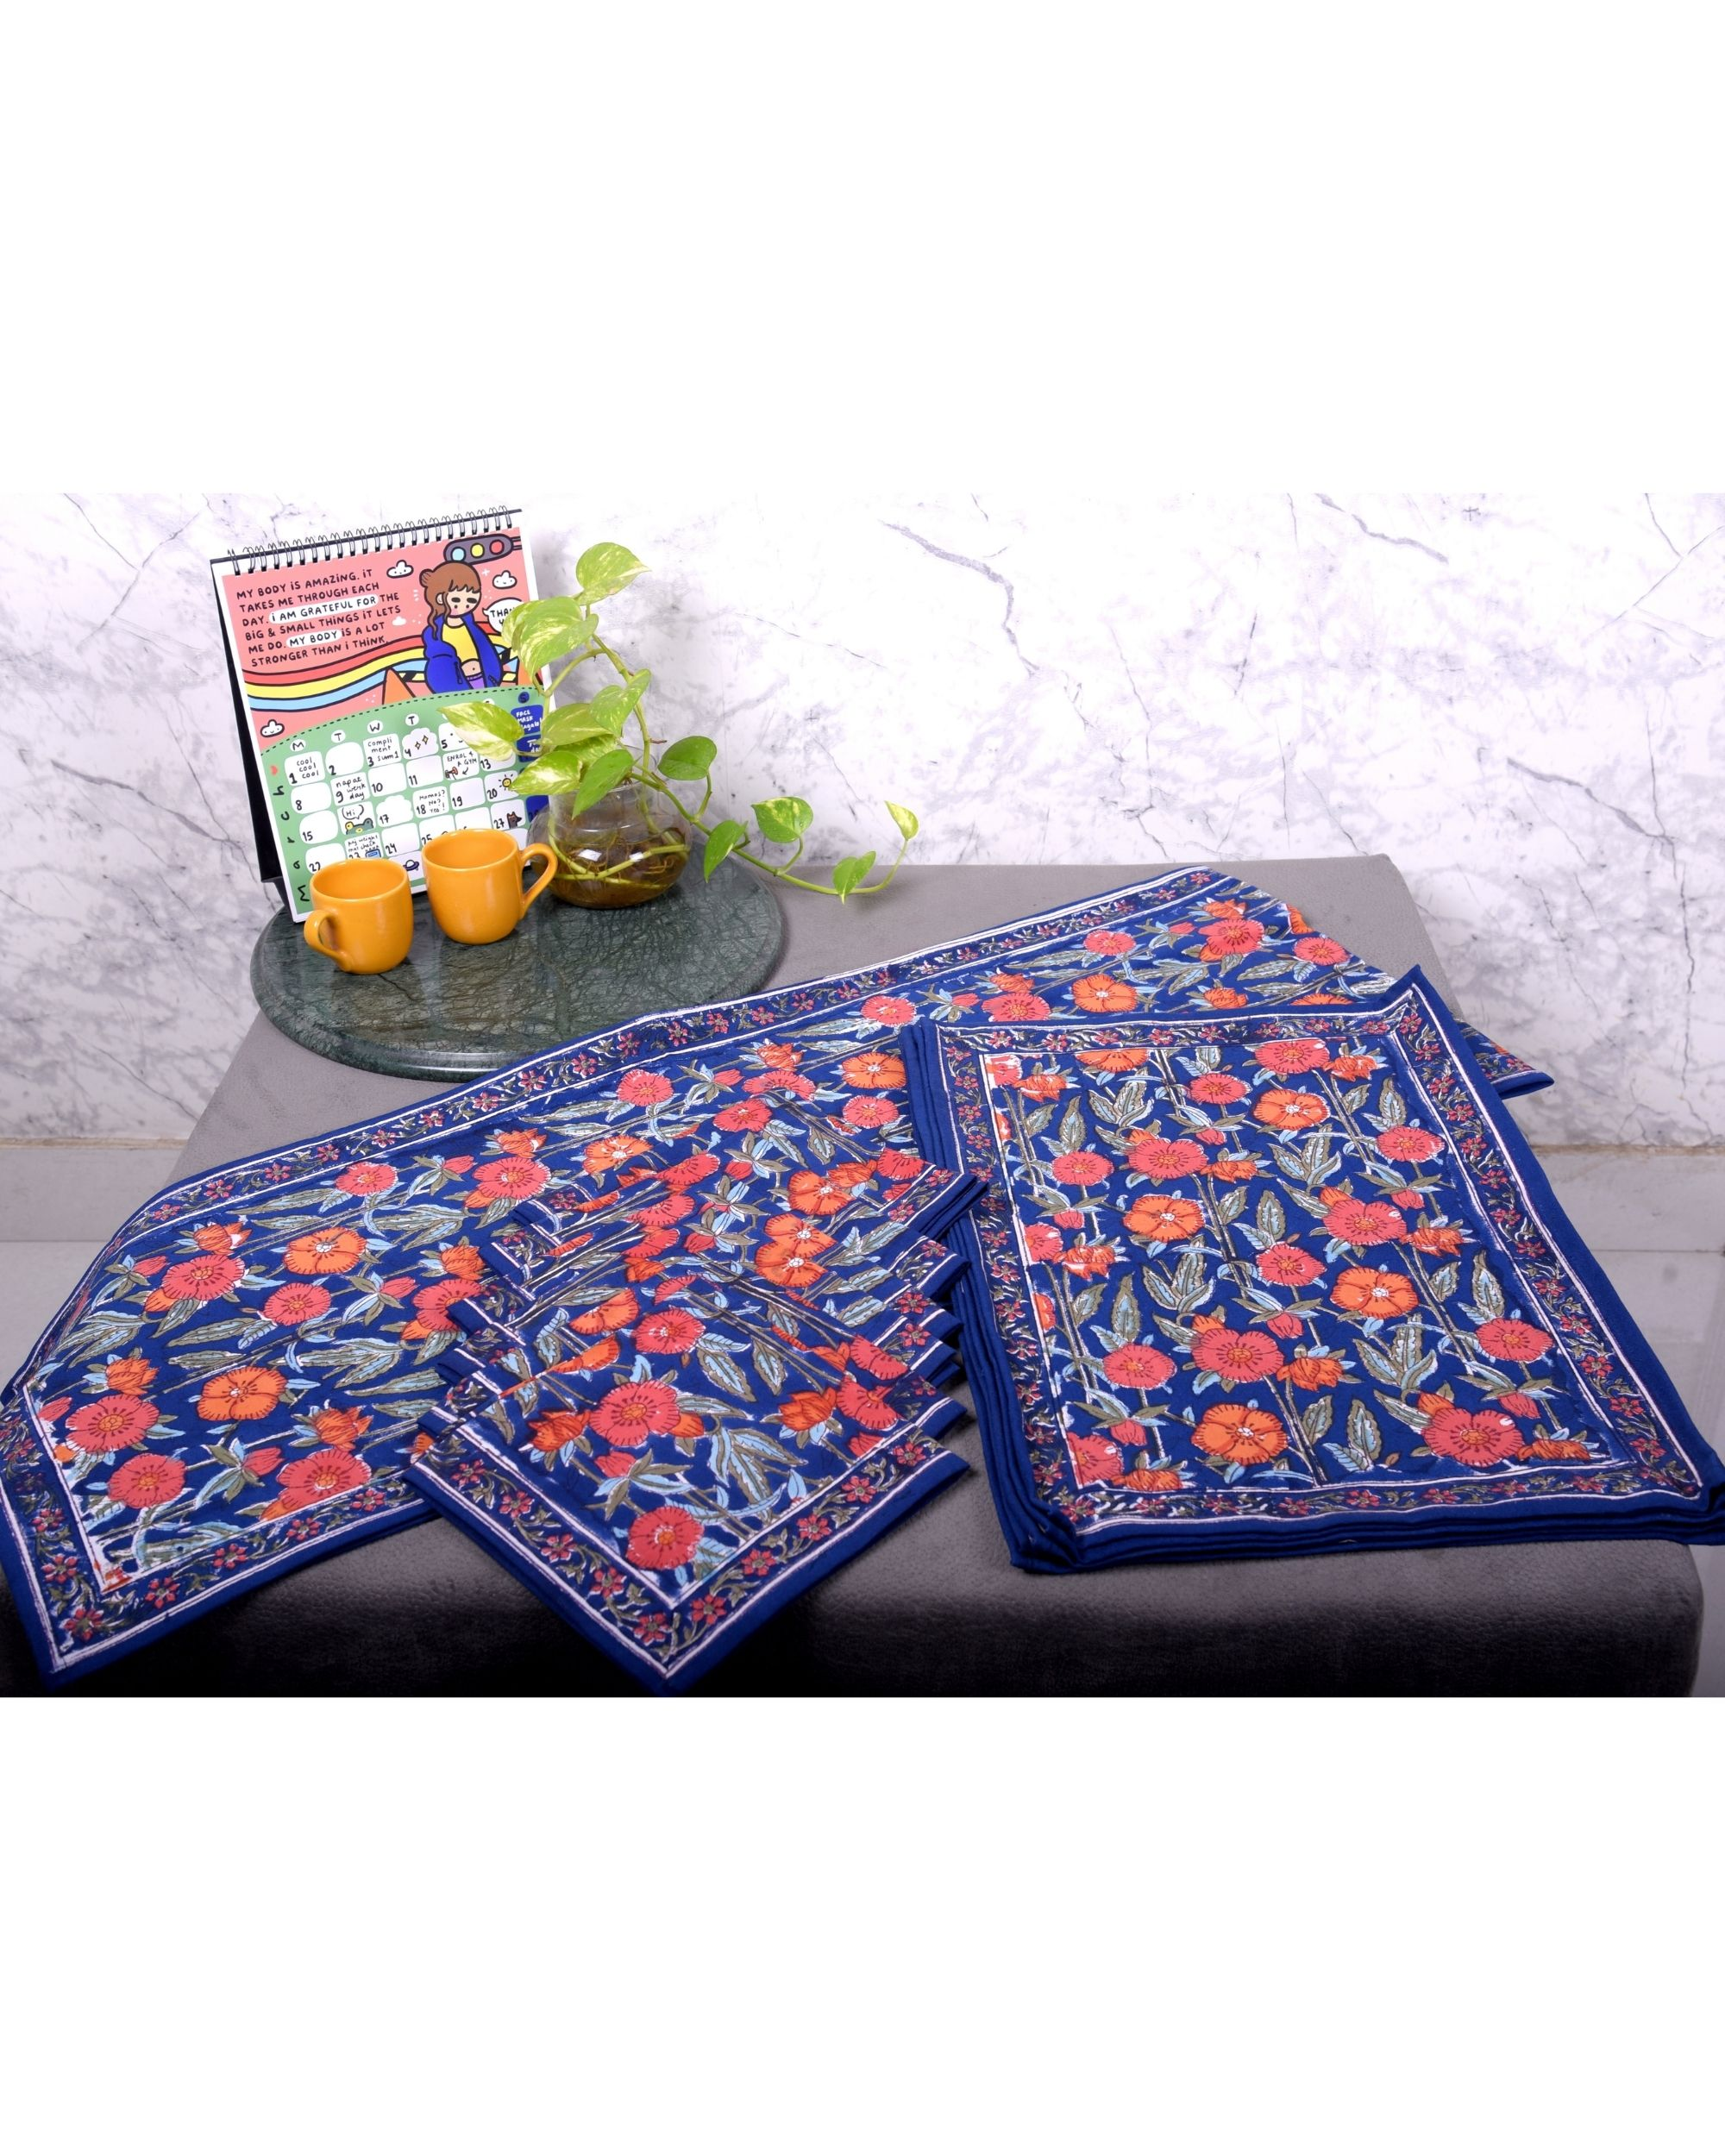 Blue and orange floral table runner, table mats and napkins - set of 13